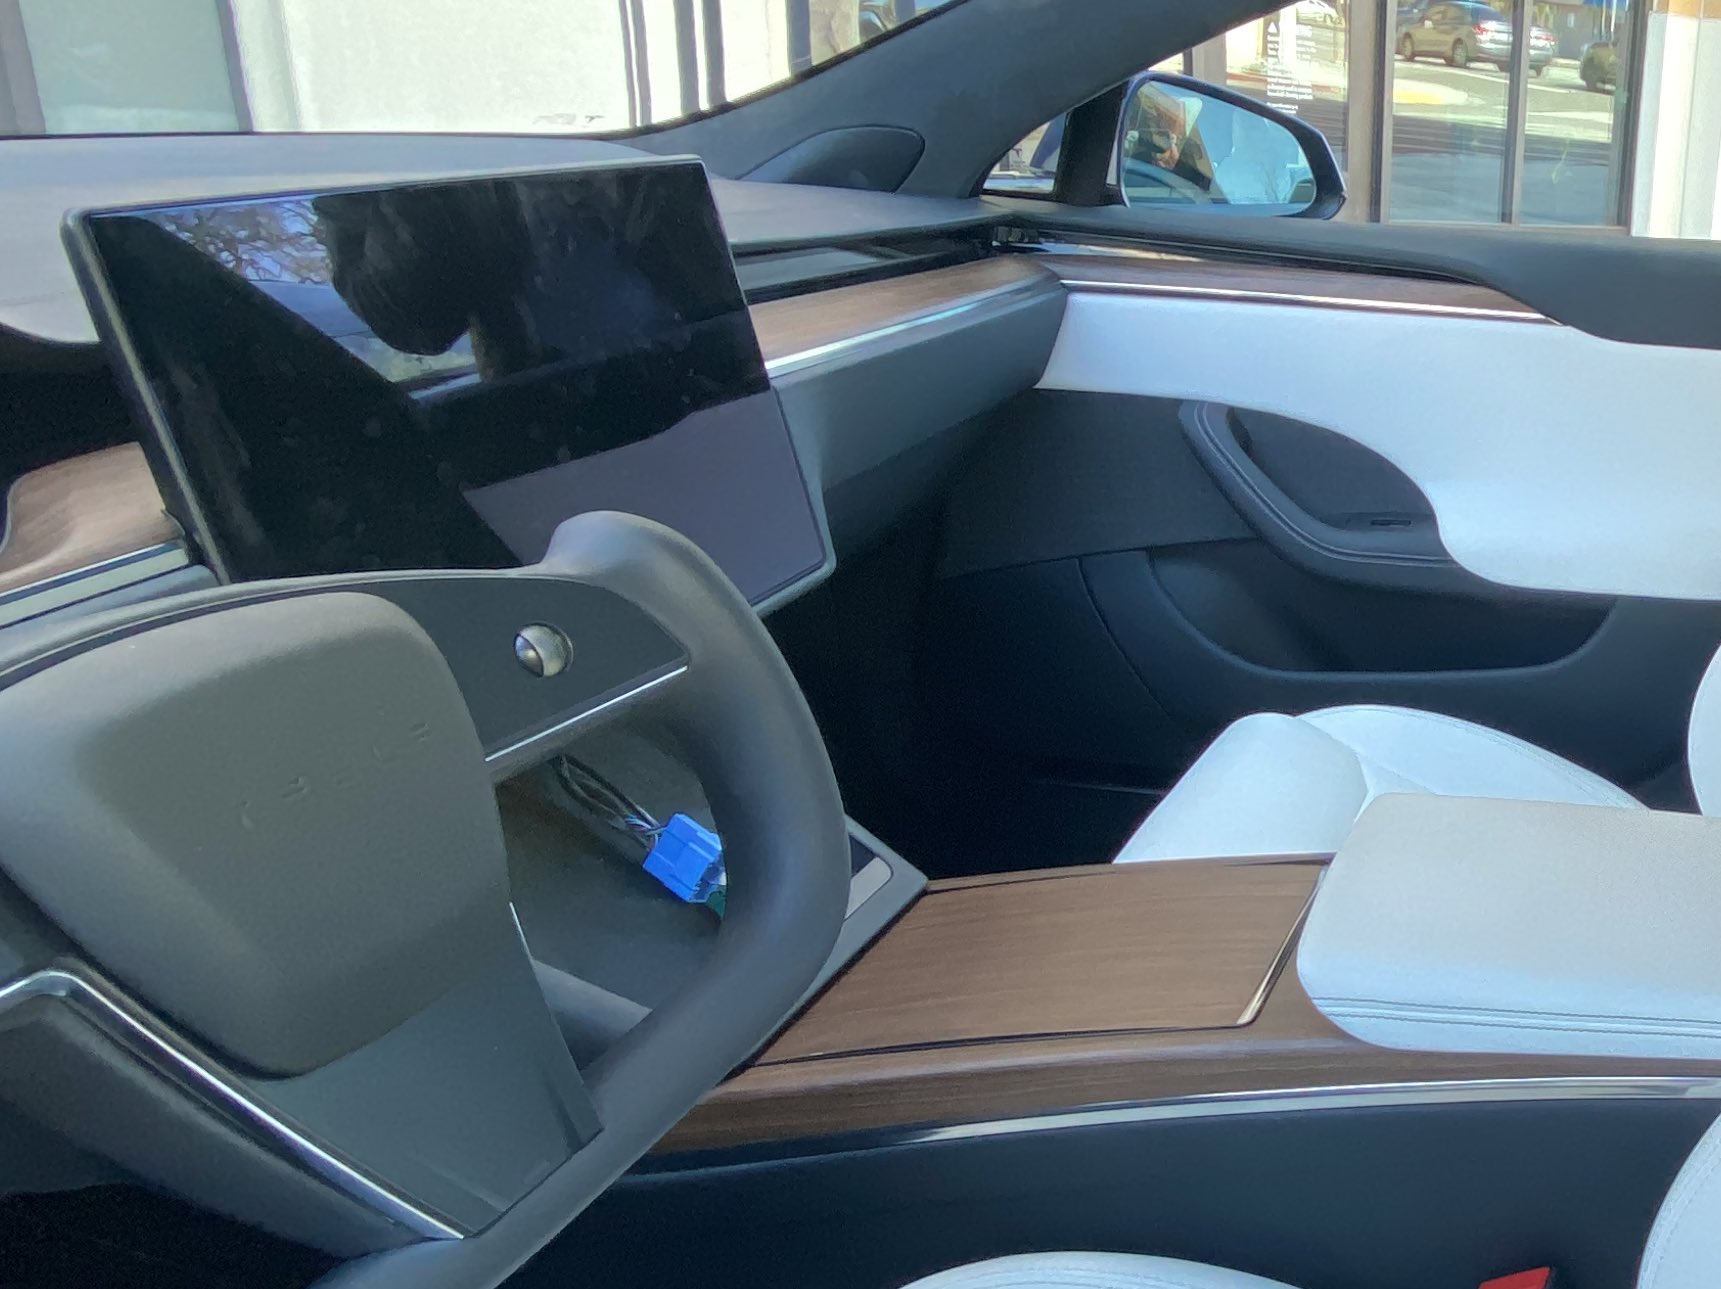 Tesla Model S Yoke steering wheel and refreshed interior (Credit: The Kilowatts)